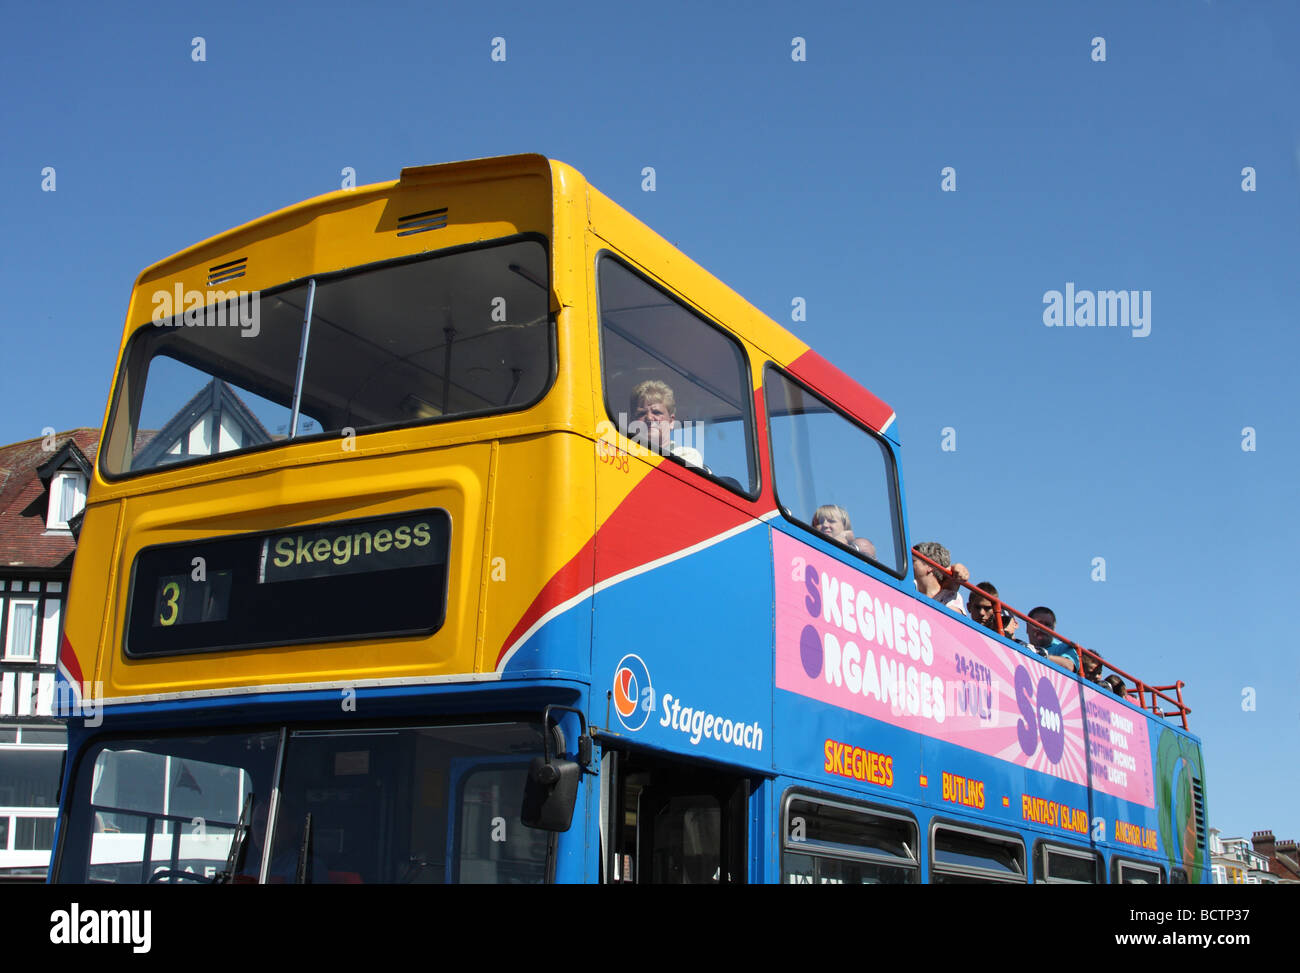 An open top tour bus at Skegness, Lincolnshire, England, U.K. - Stock Image